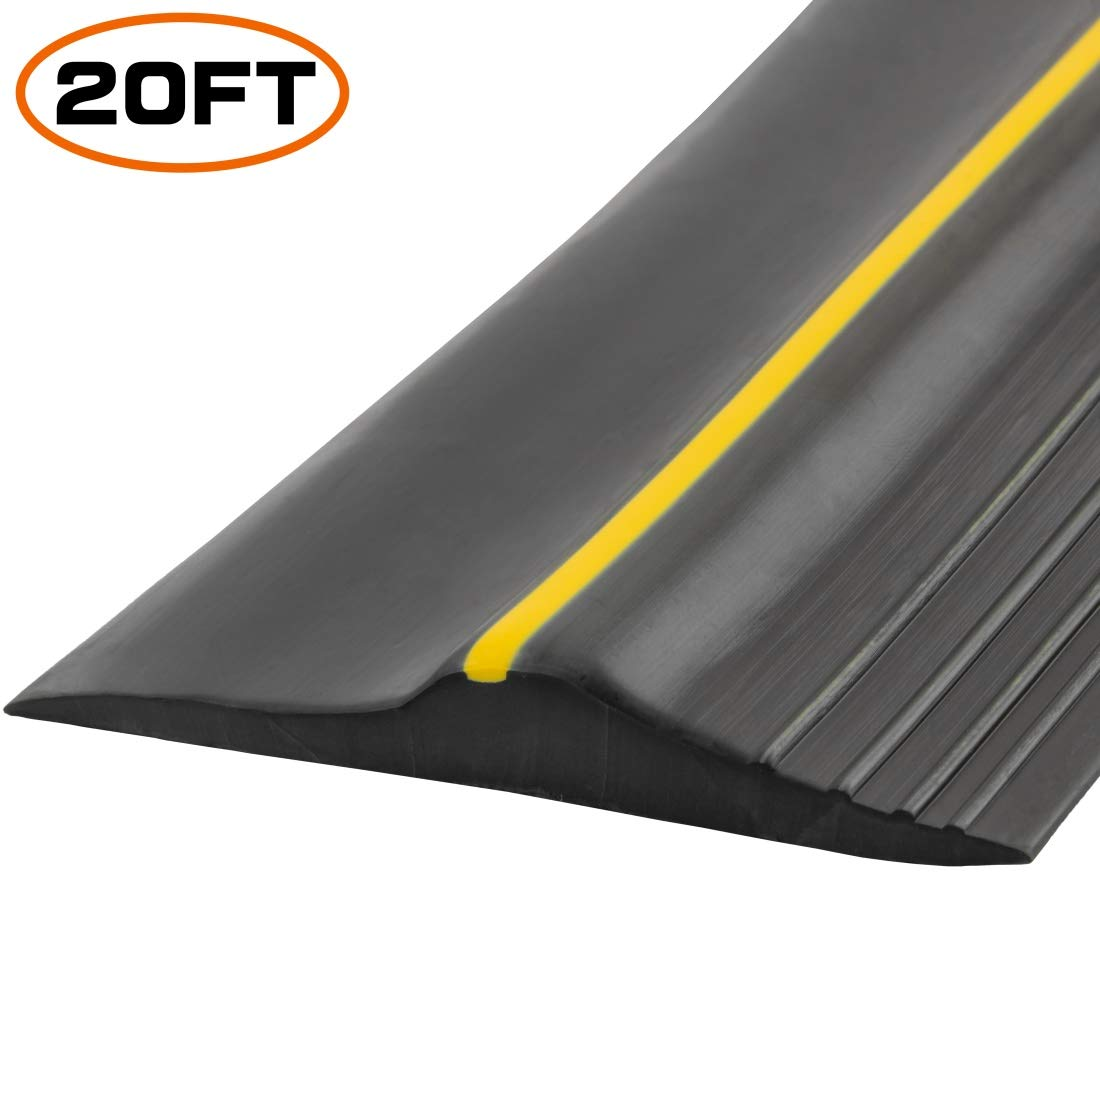 Universal Garage Door Bottom Threshold Seal Strip,Weatherproof Rubber DIY Weather Stripping Replacement, Not Include Sealant/Adhesive (20Ft, Black) by PAPILLON